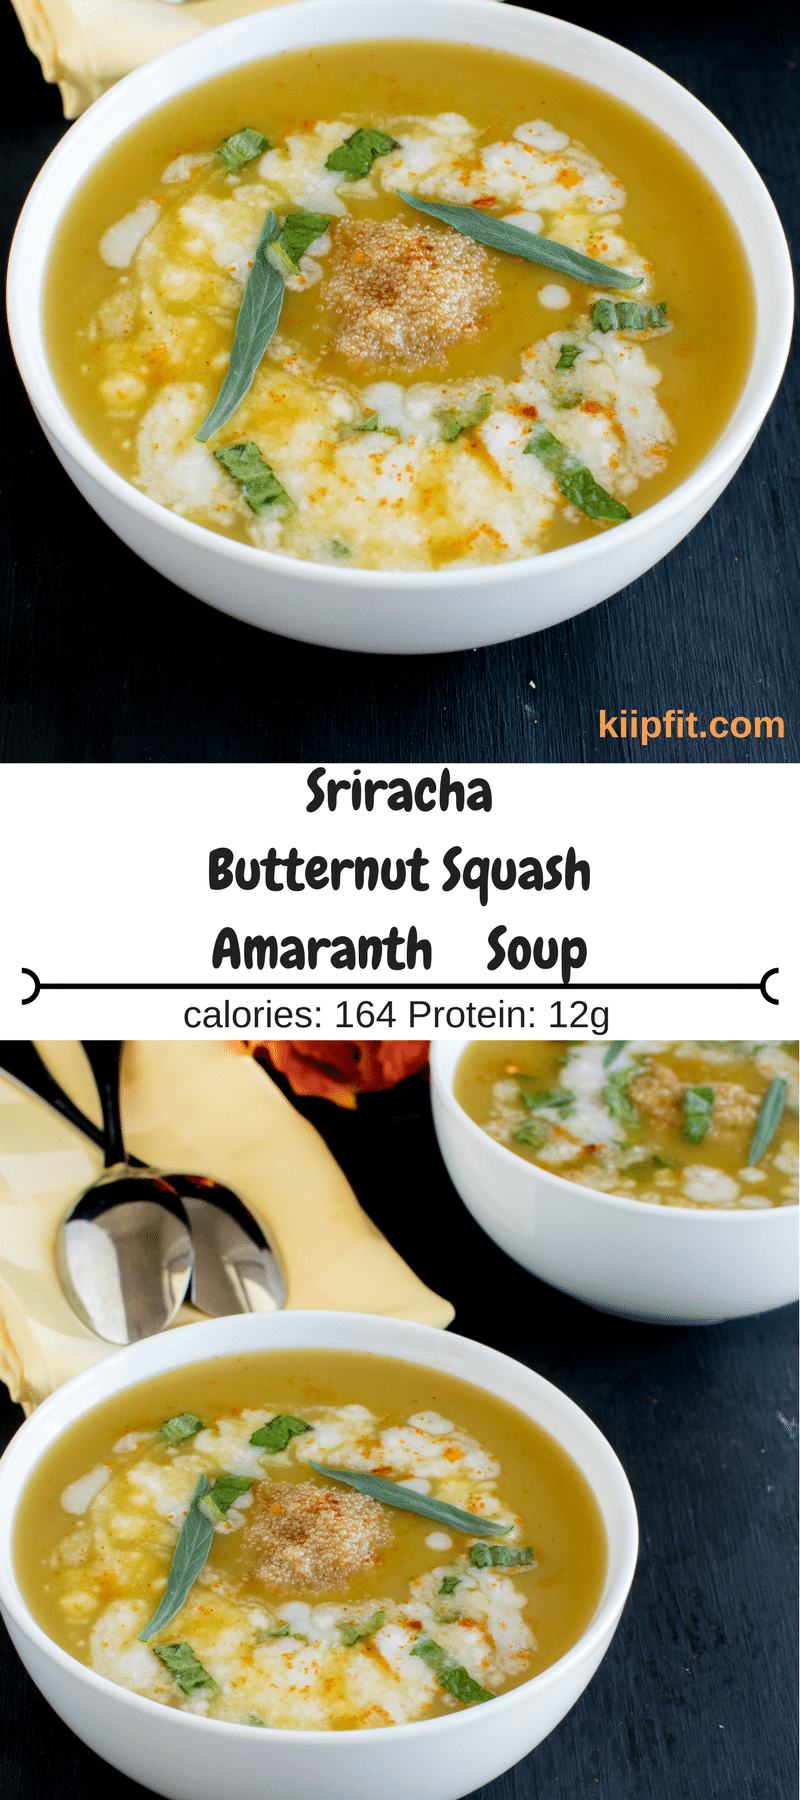 This creamy and nutritious Sriracha Butternut Squash Amaranth Soup is bursting with flavors. It's healthy, gluten free and protein rich. This heavenly soup is made with fresh butternut squash, amaranth grains and spiced with sriracha powder mix. Now that sounds like a perfect fall soup [ vegan + GF + oil free ] kiipfit.com